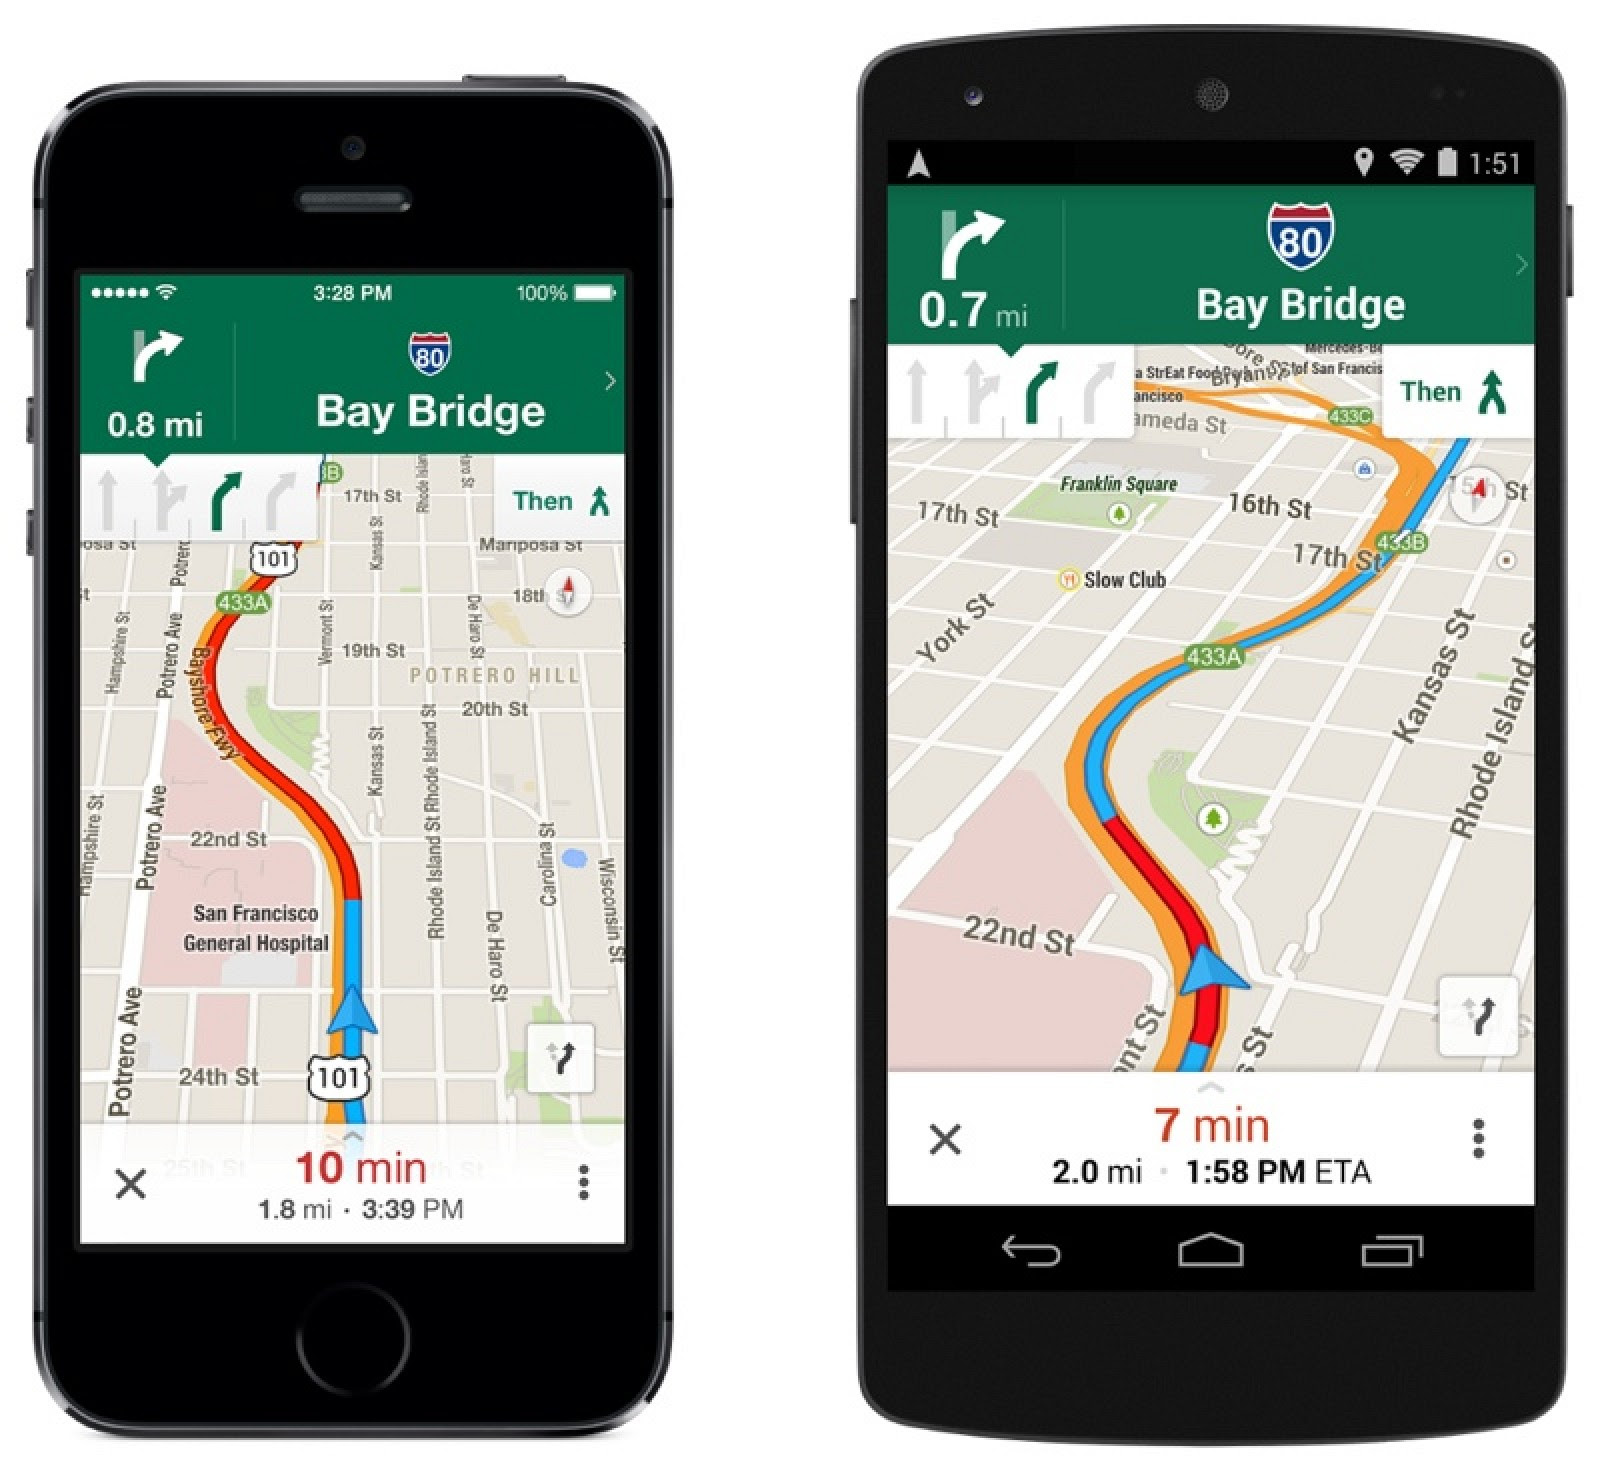 Google Maps For Ios Gains Uber Integration Lane Guidance